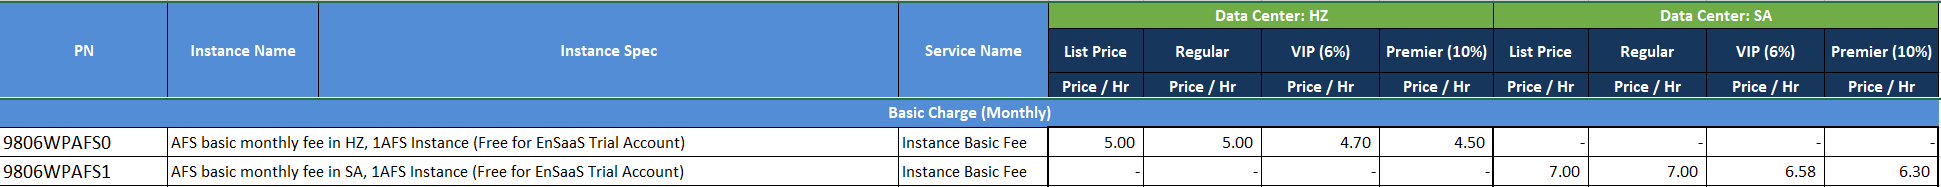 AFS_pricing01.png